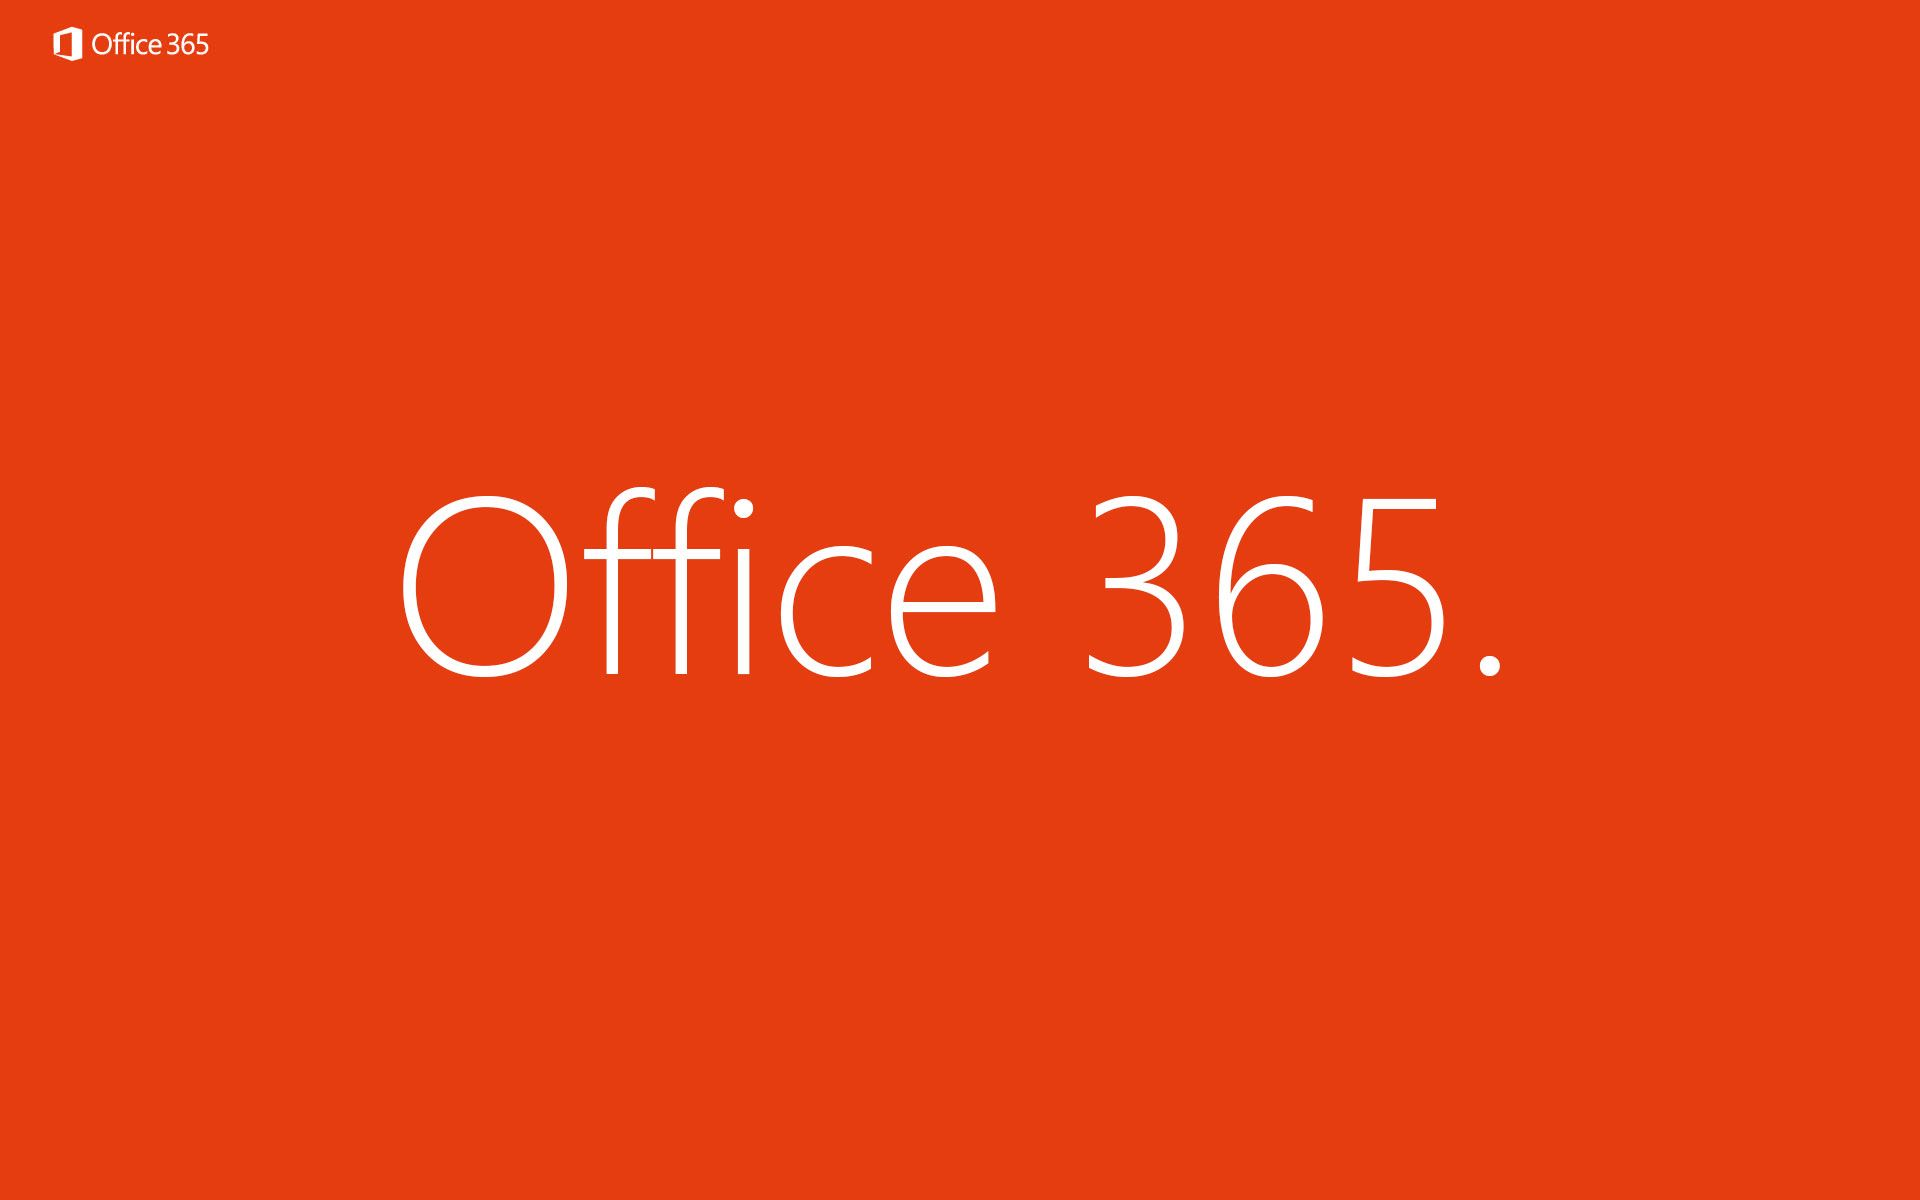 Microsoft Office 365 Is Veritably A Productivity Suite For